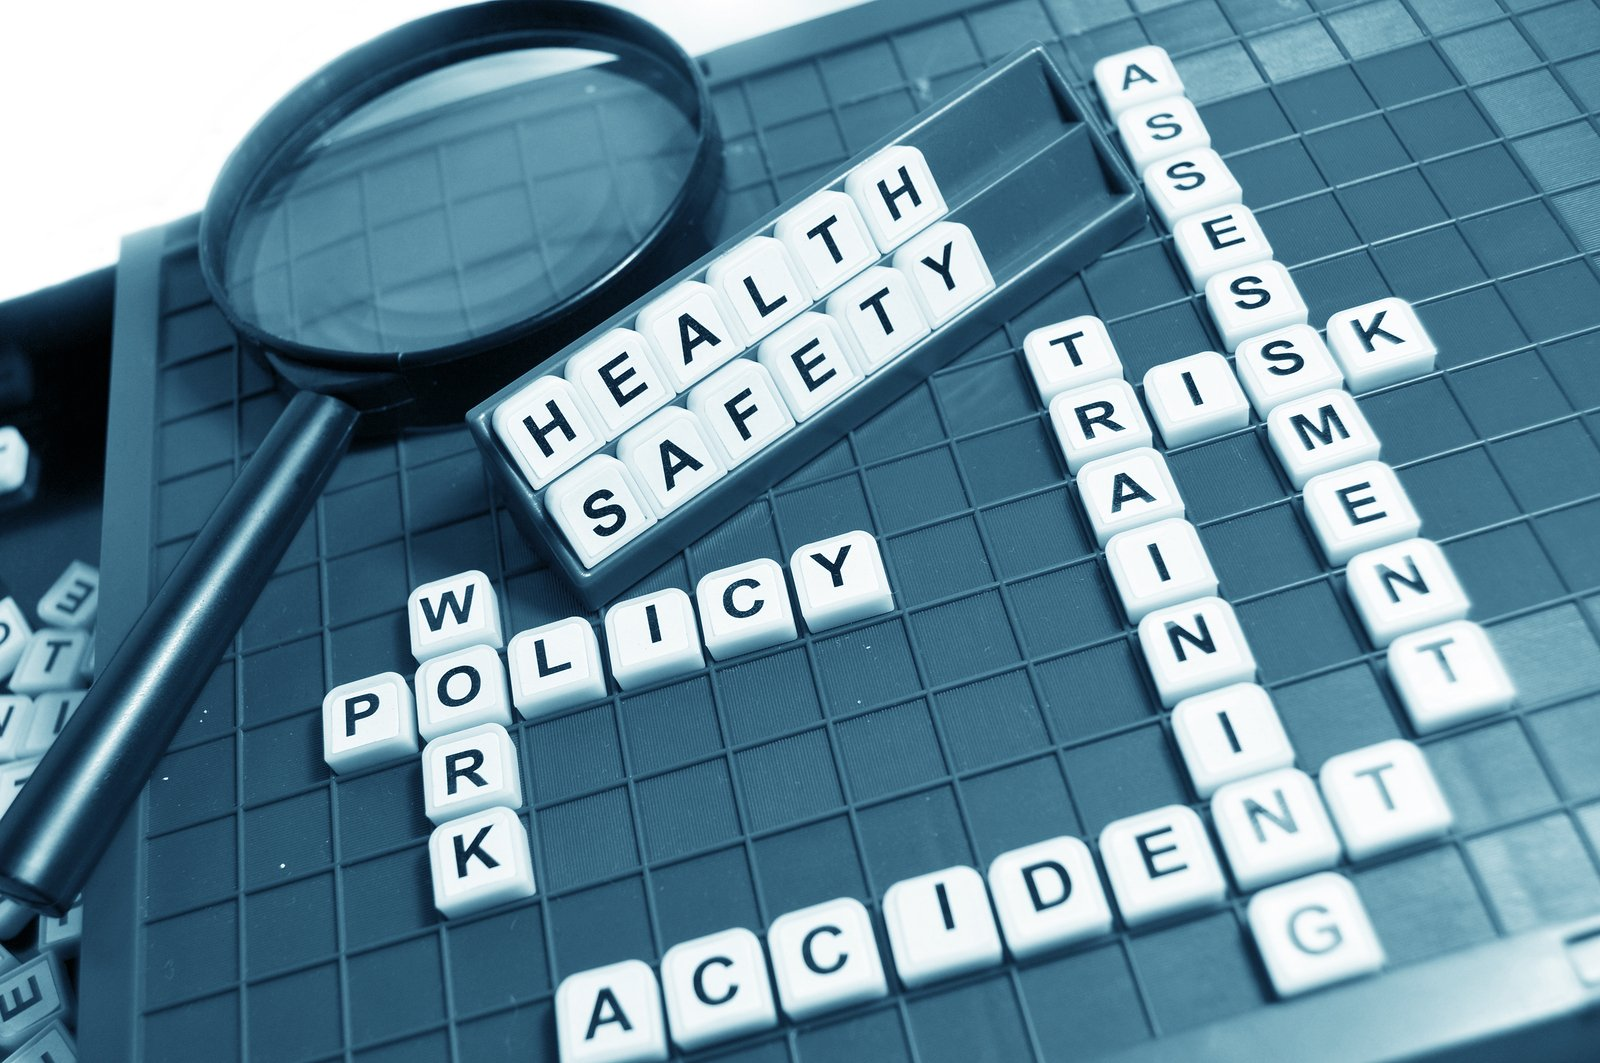 Health and Safety Training Development - Shea